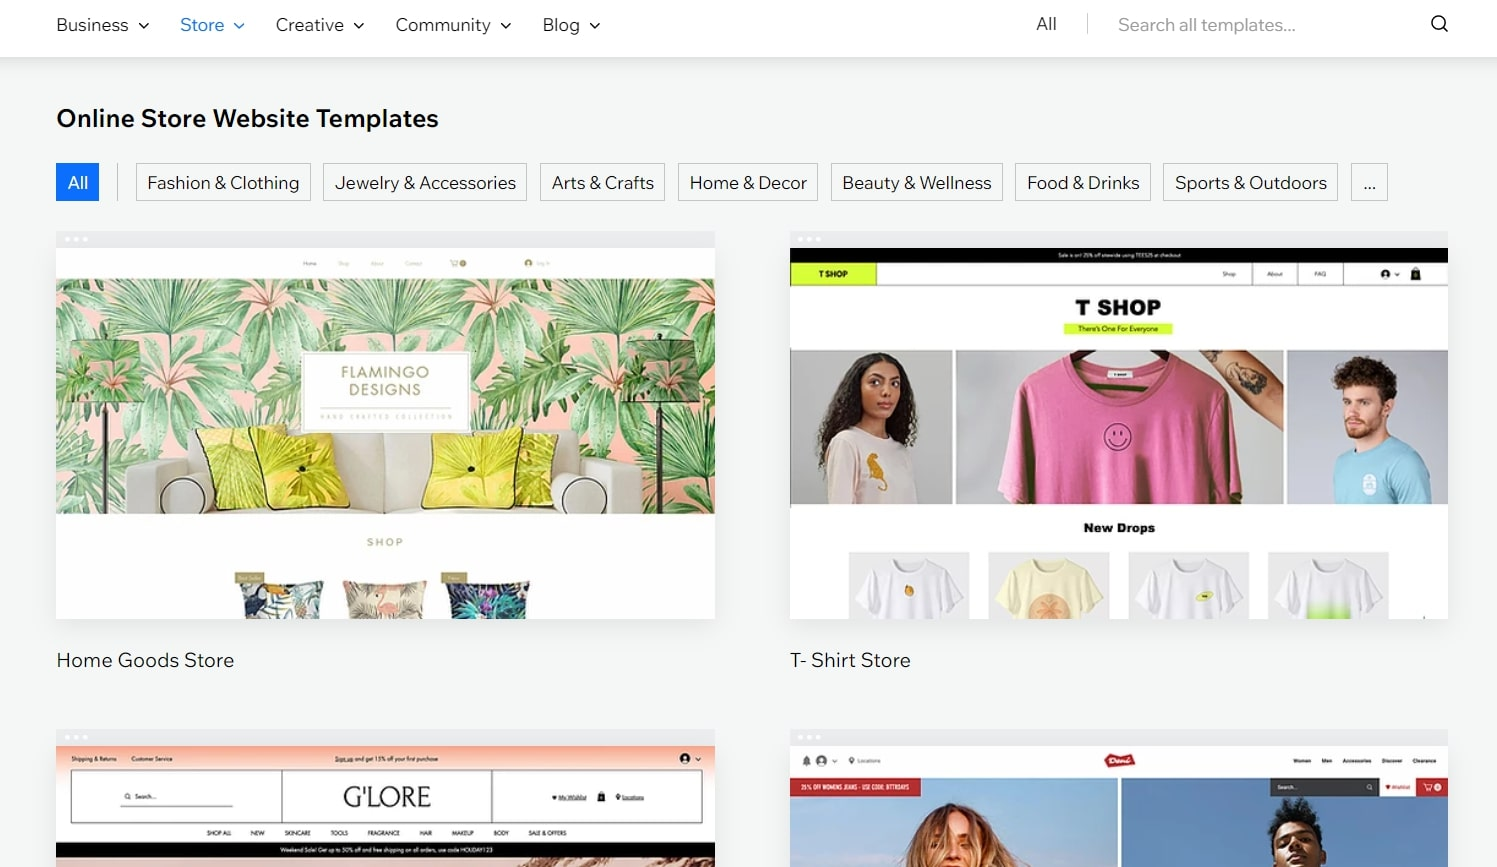 Wix's online store templates library